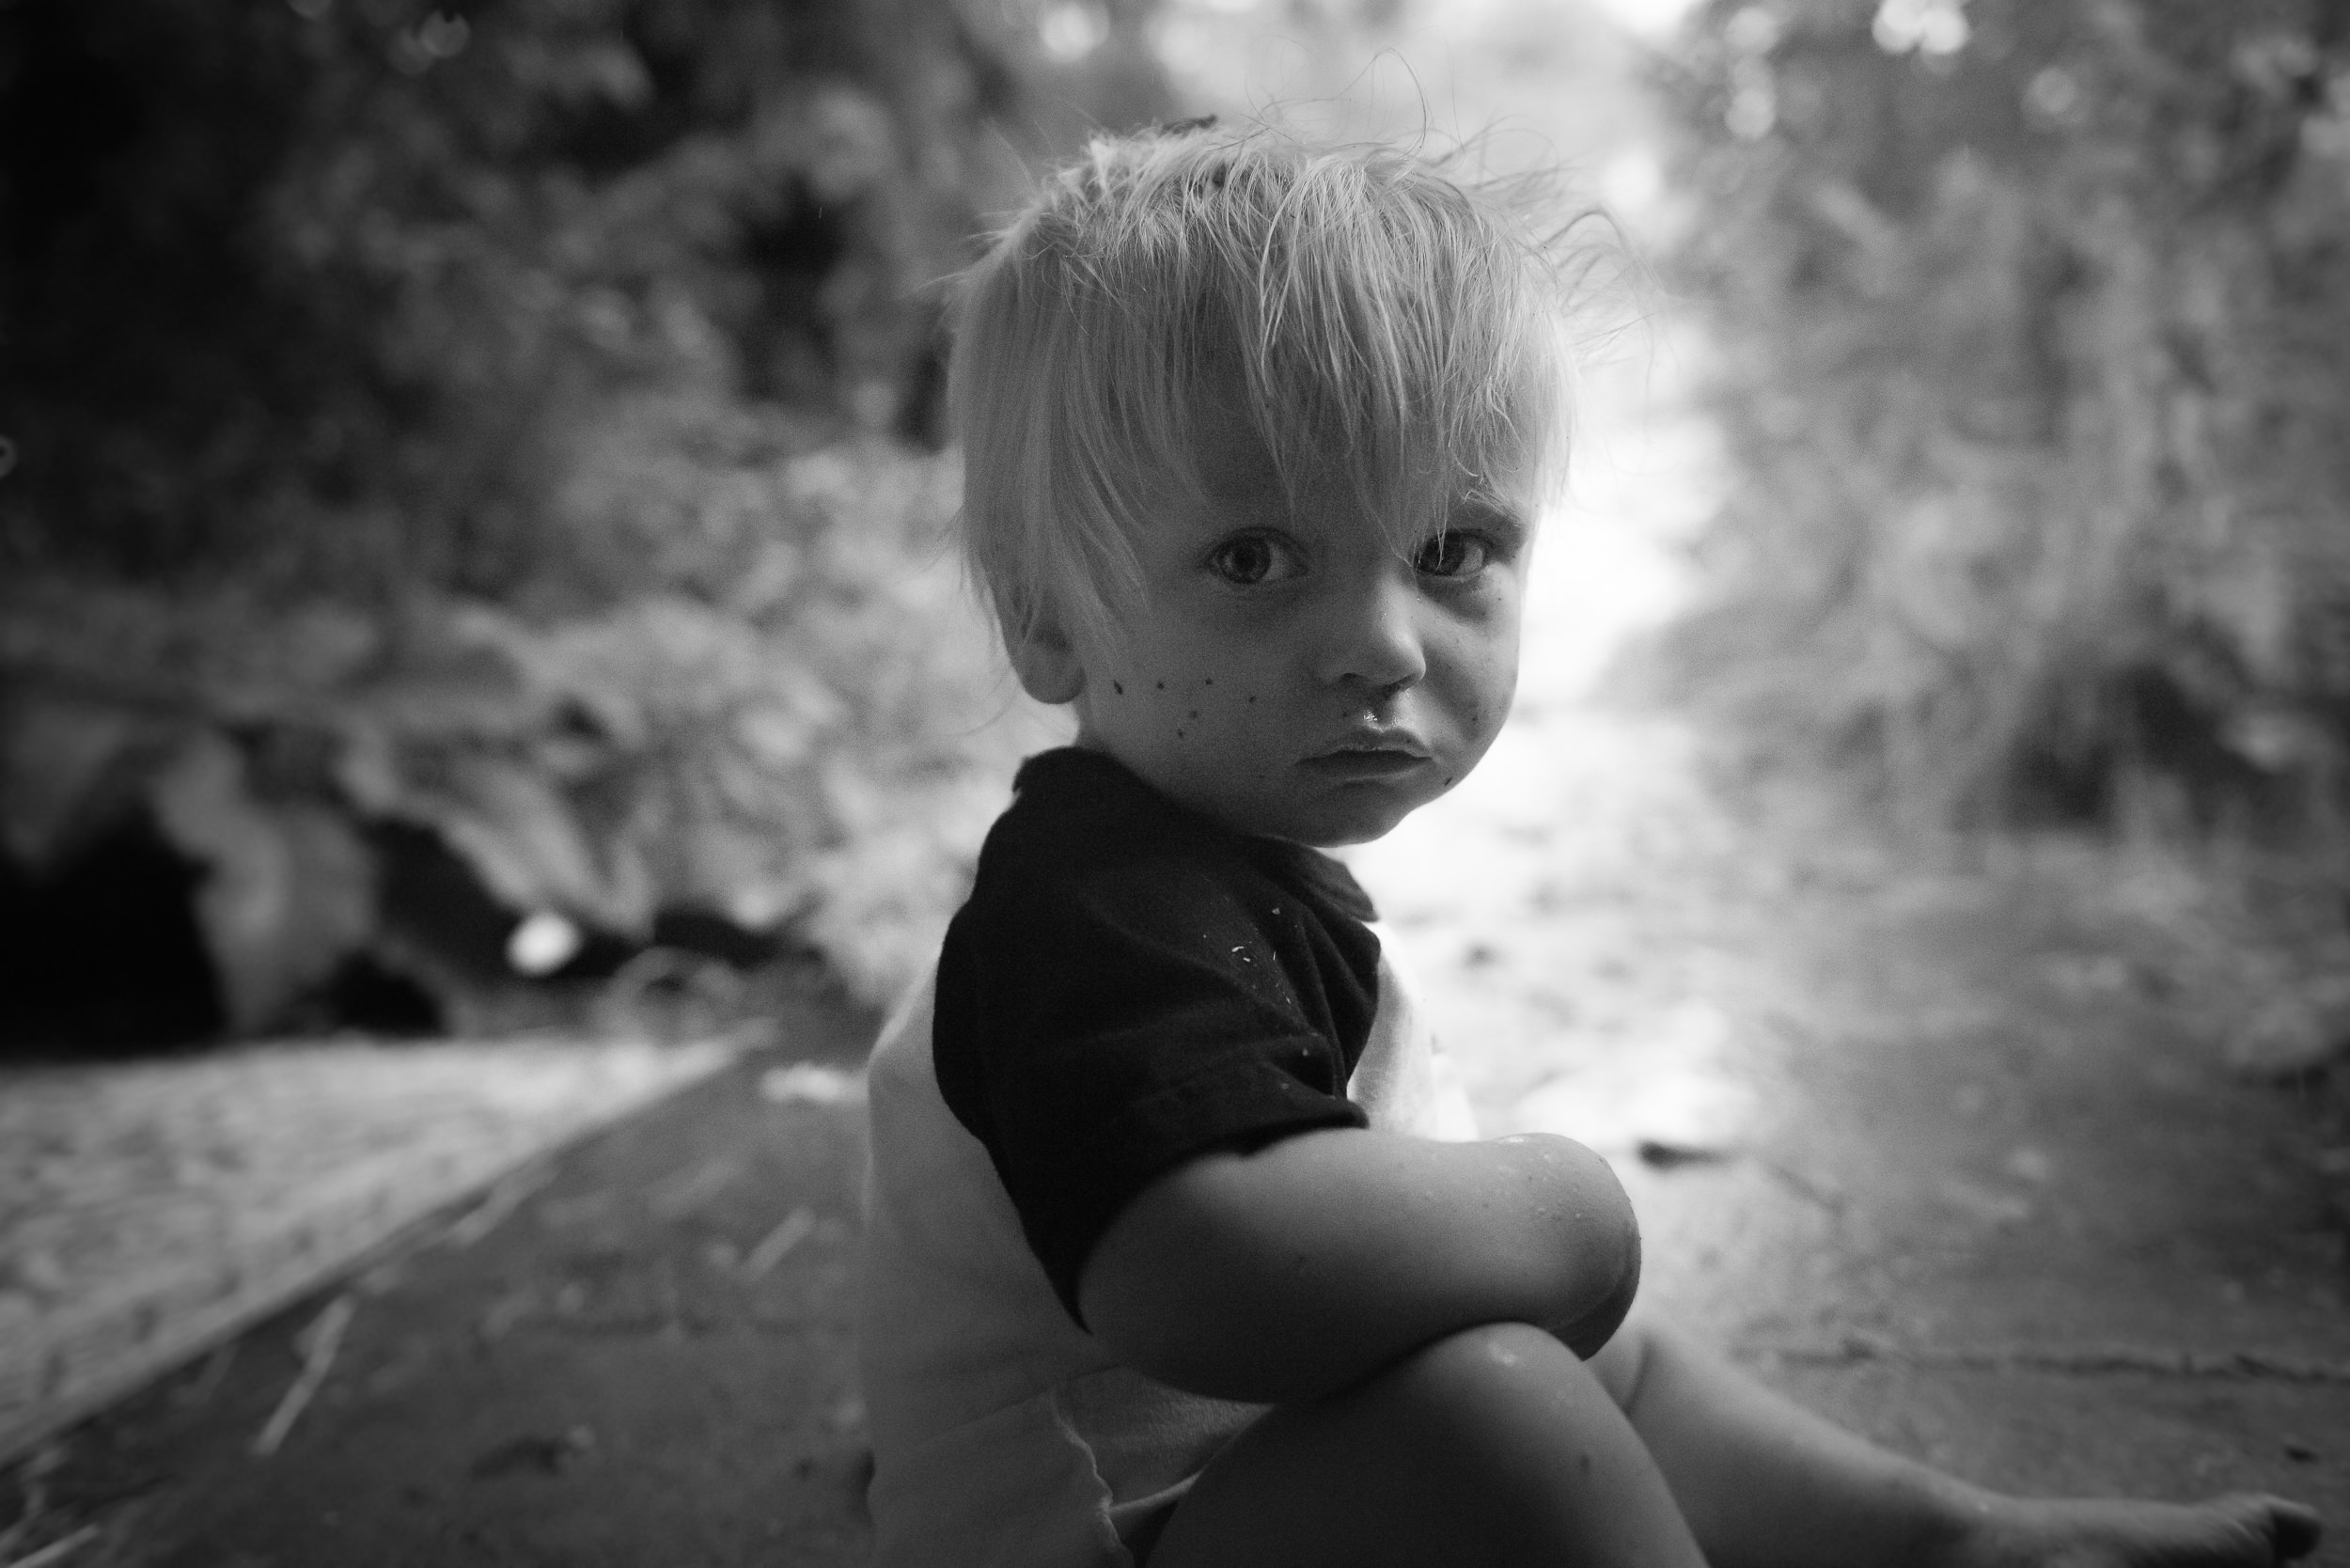 Blog - The Pen & Camera - Gratitude Journal, Inspirational, Writing - Molly Rees Photo - Black and White Documentary Childhood Photography - portrait of young boy outside in rain by M. Menschel